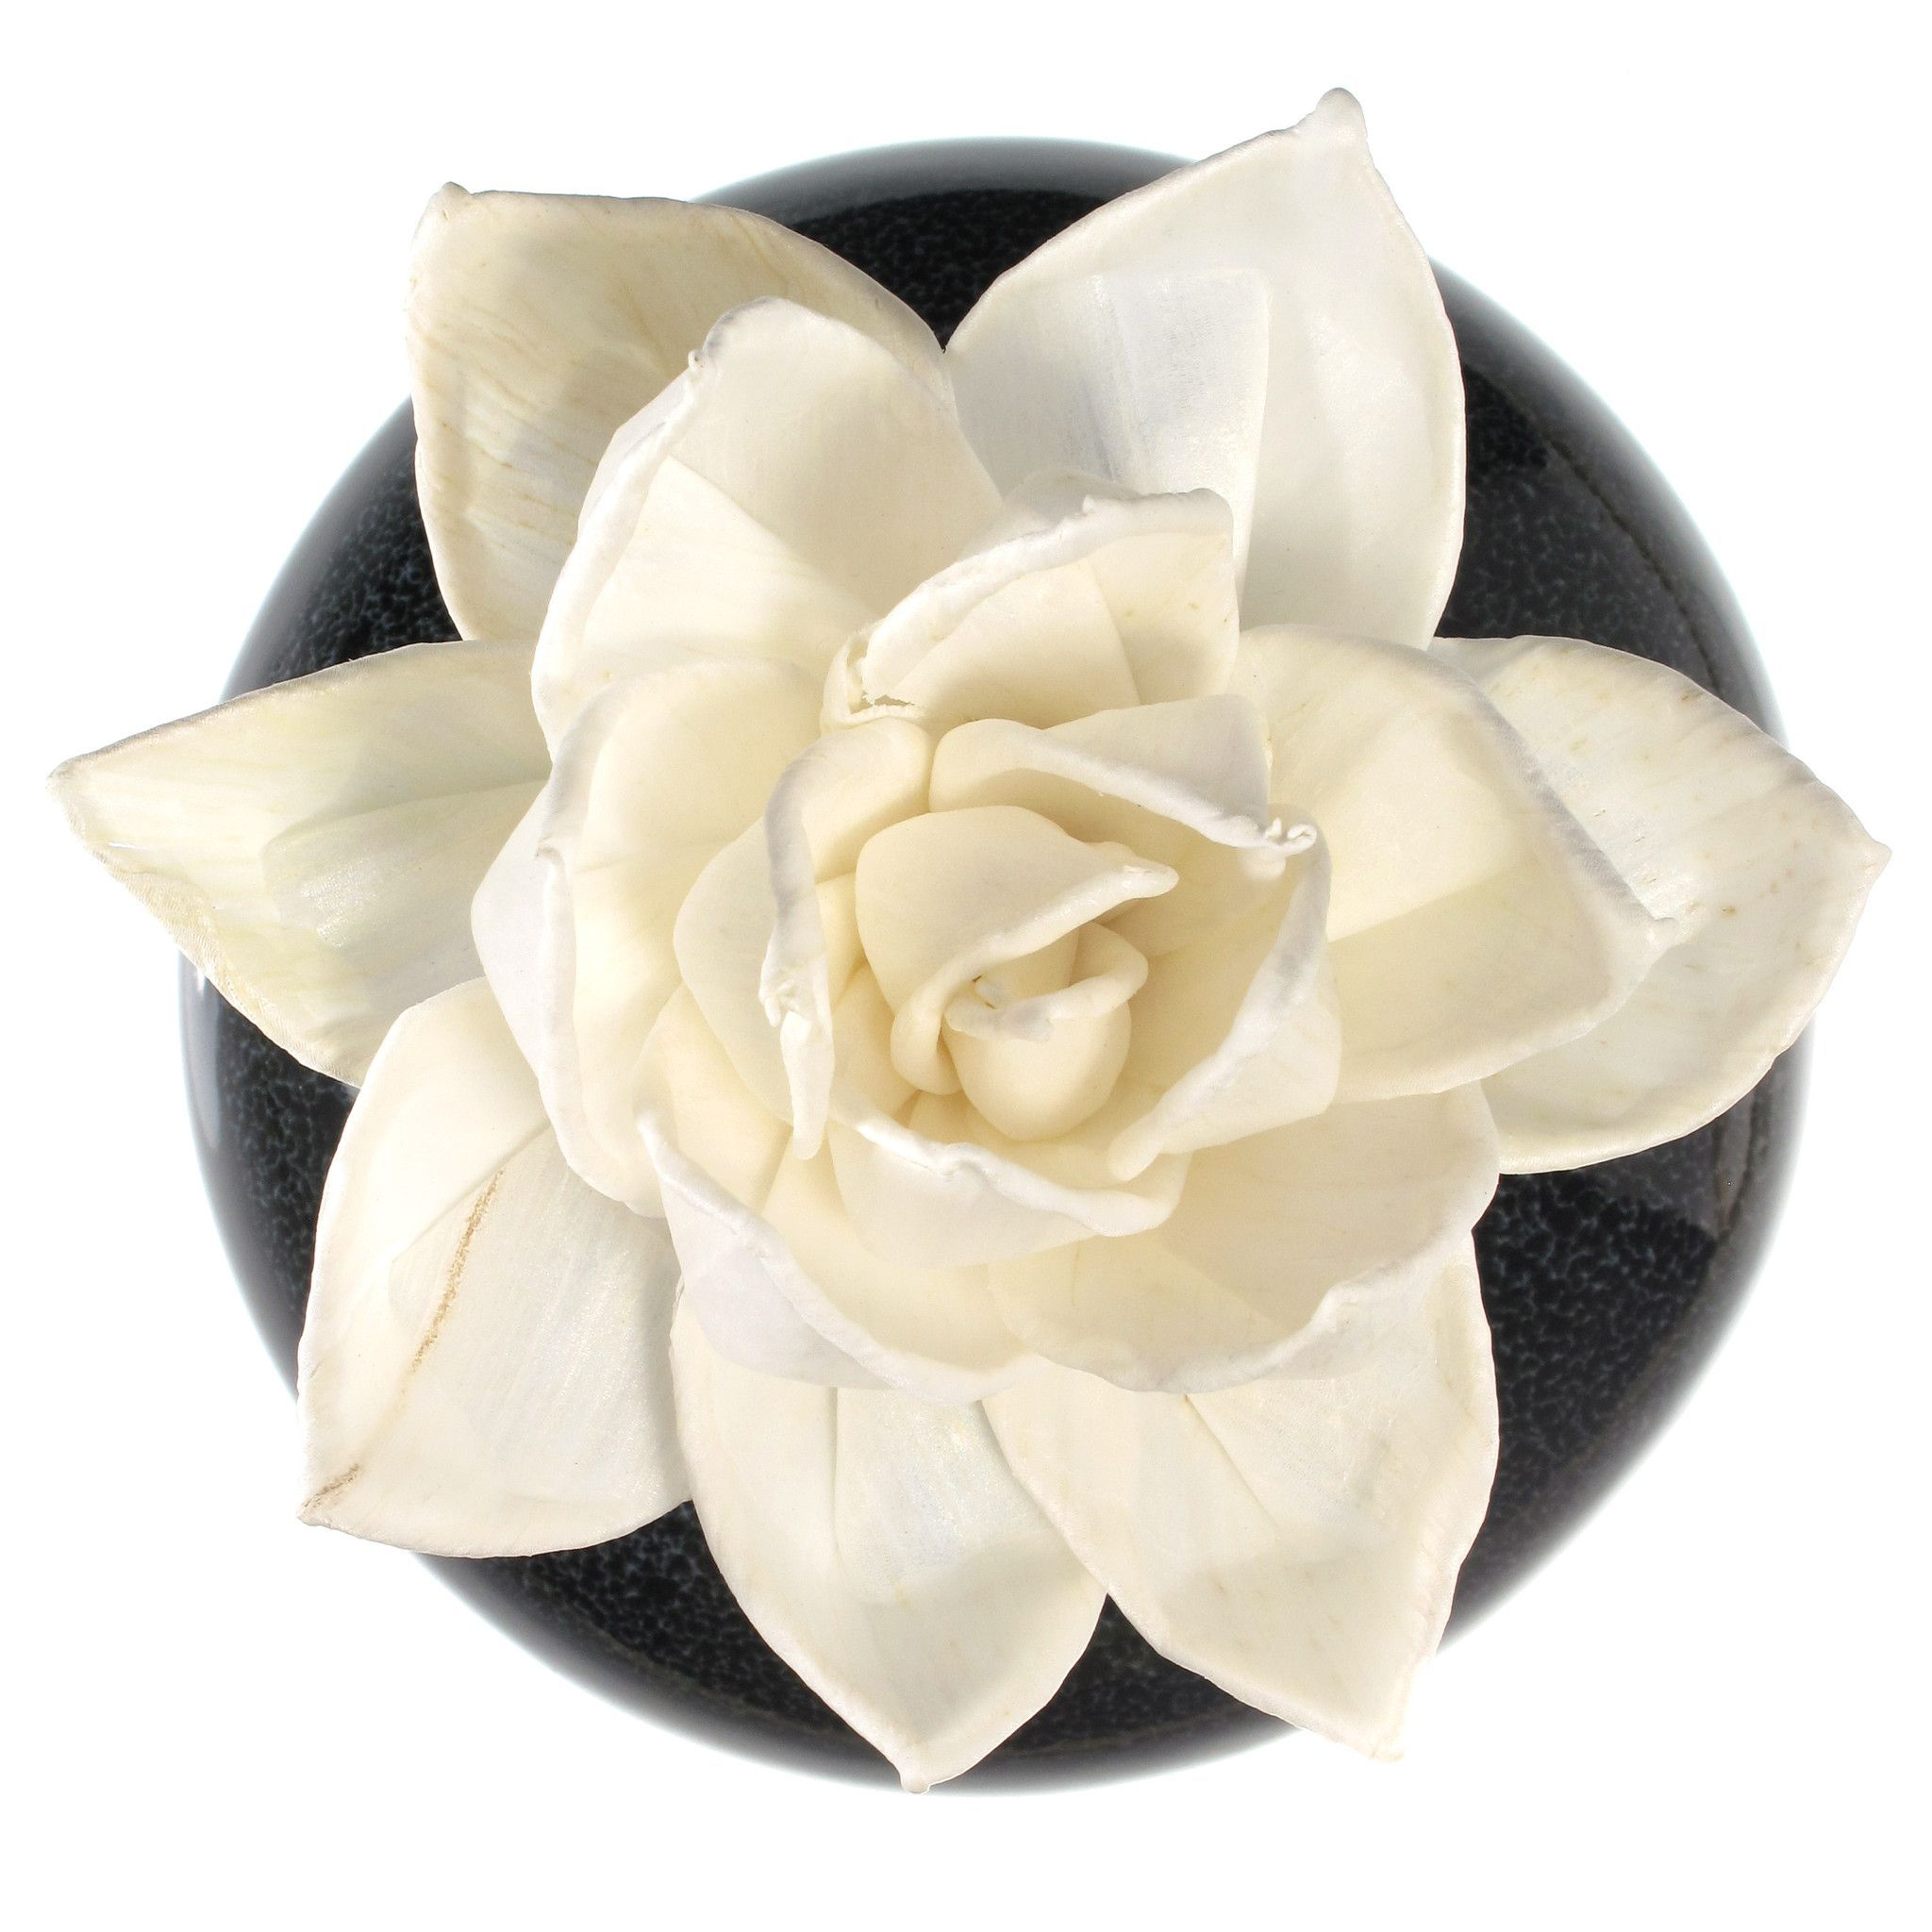 Sola Wood Flower Aroma Oil Diffuser With A Bendable Cotton Wire Wick